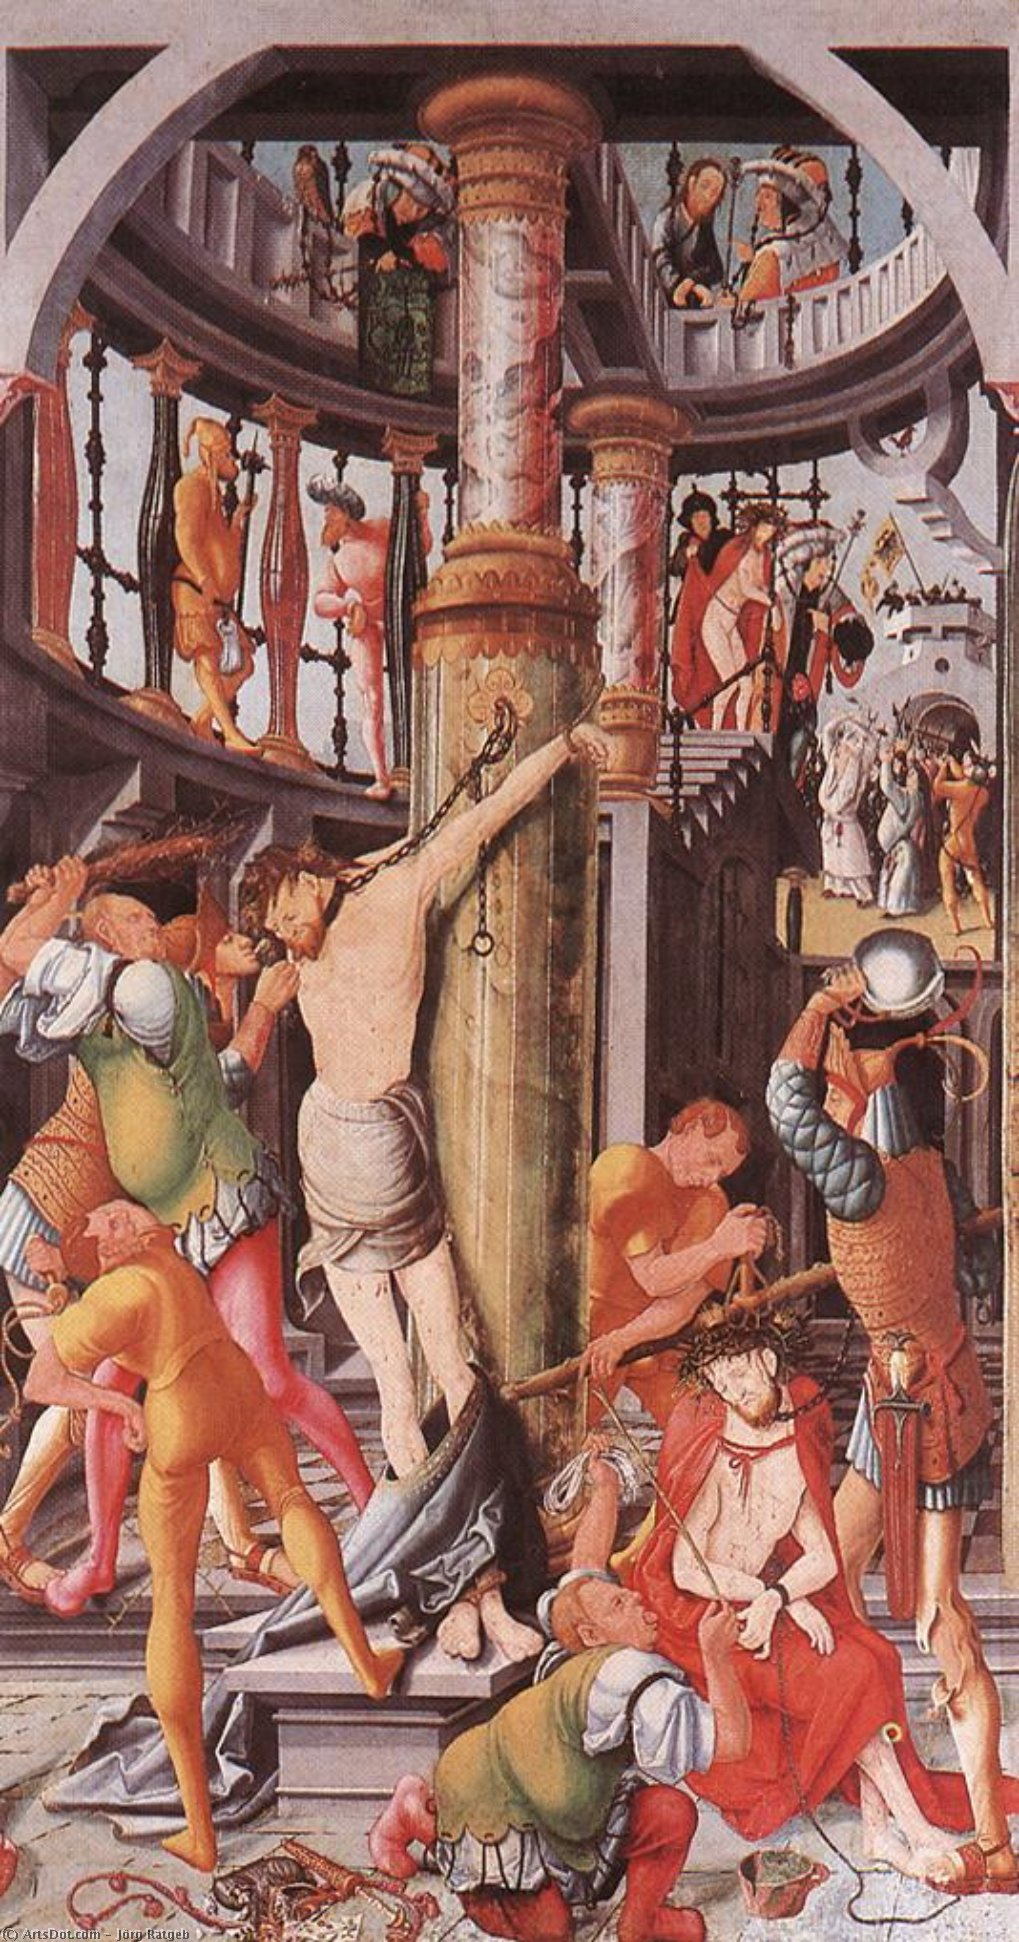 Wikioo.org - The Encyclopedia of Fine Arts - Painting, Artwork by Jörg Ratgeb - Flagellation of Christ